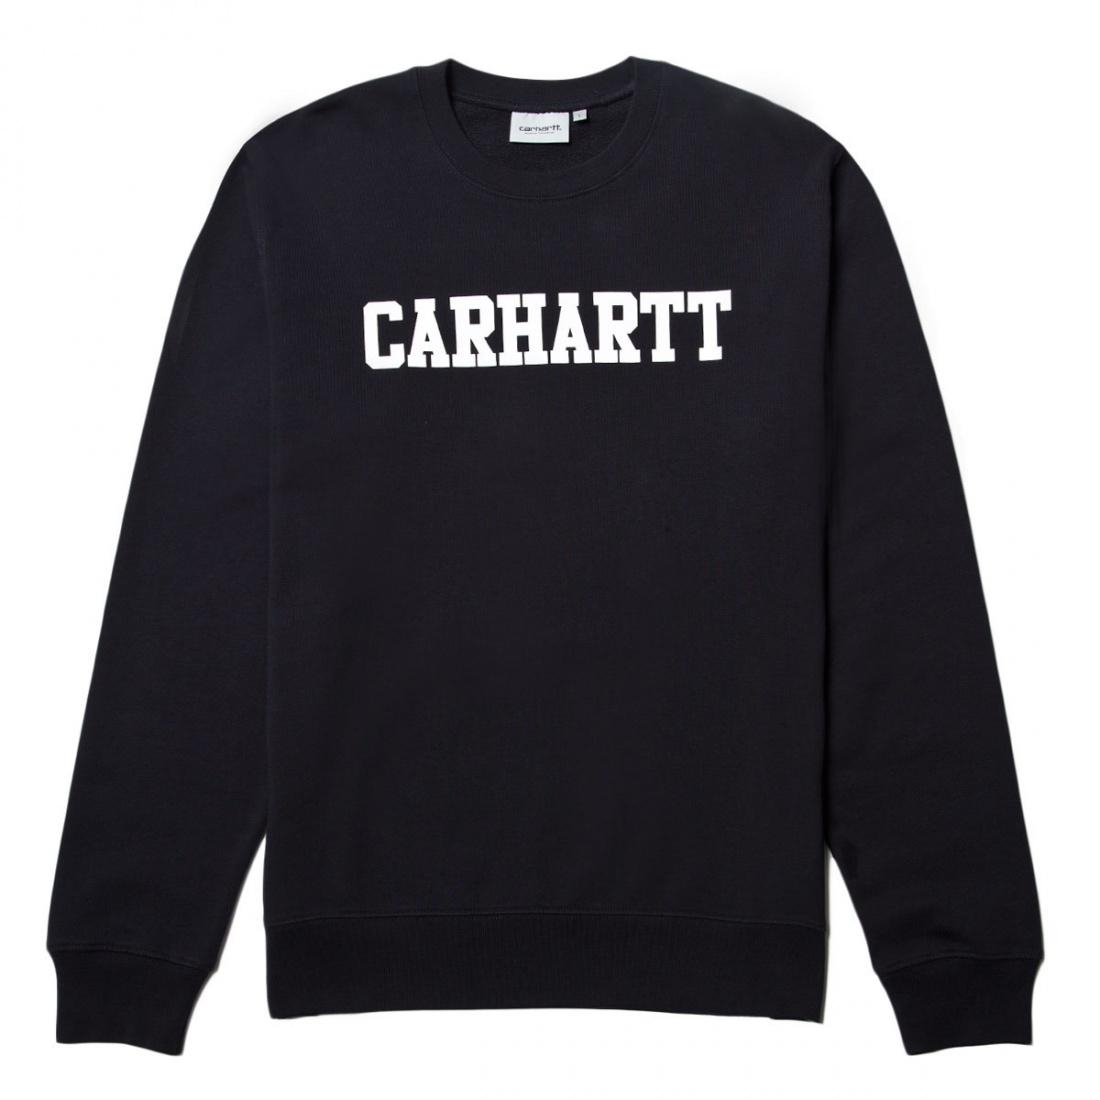 Carhartt Свитшот Carhartt WIP Dark Navy/White M retro anorak dark navy